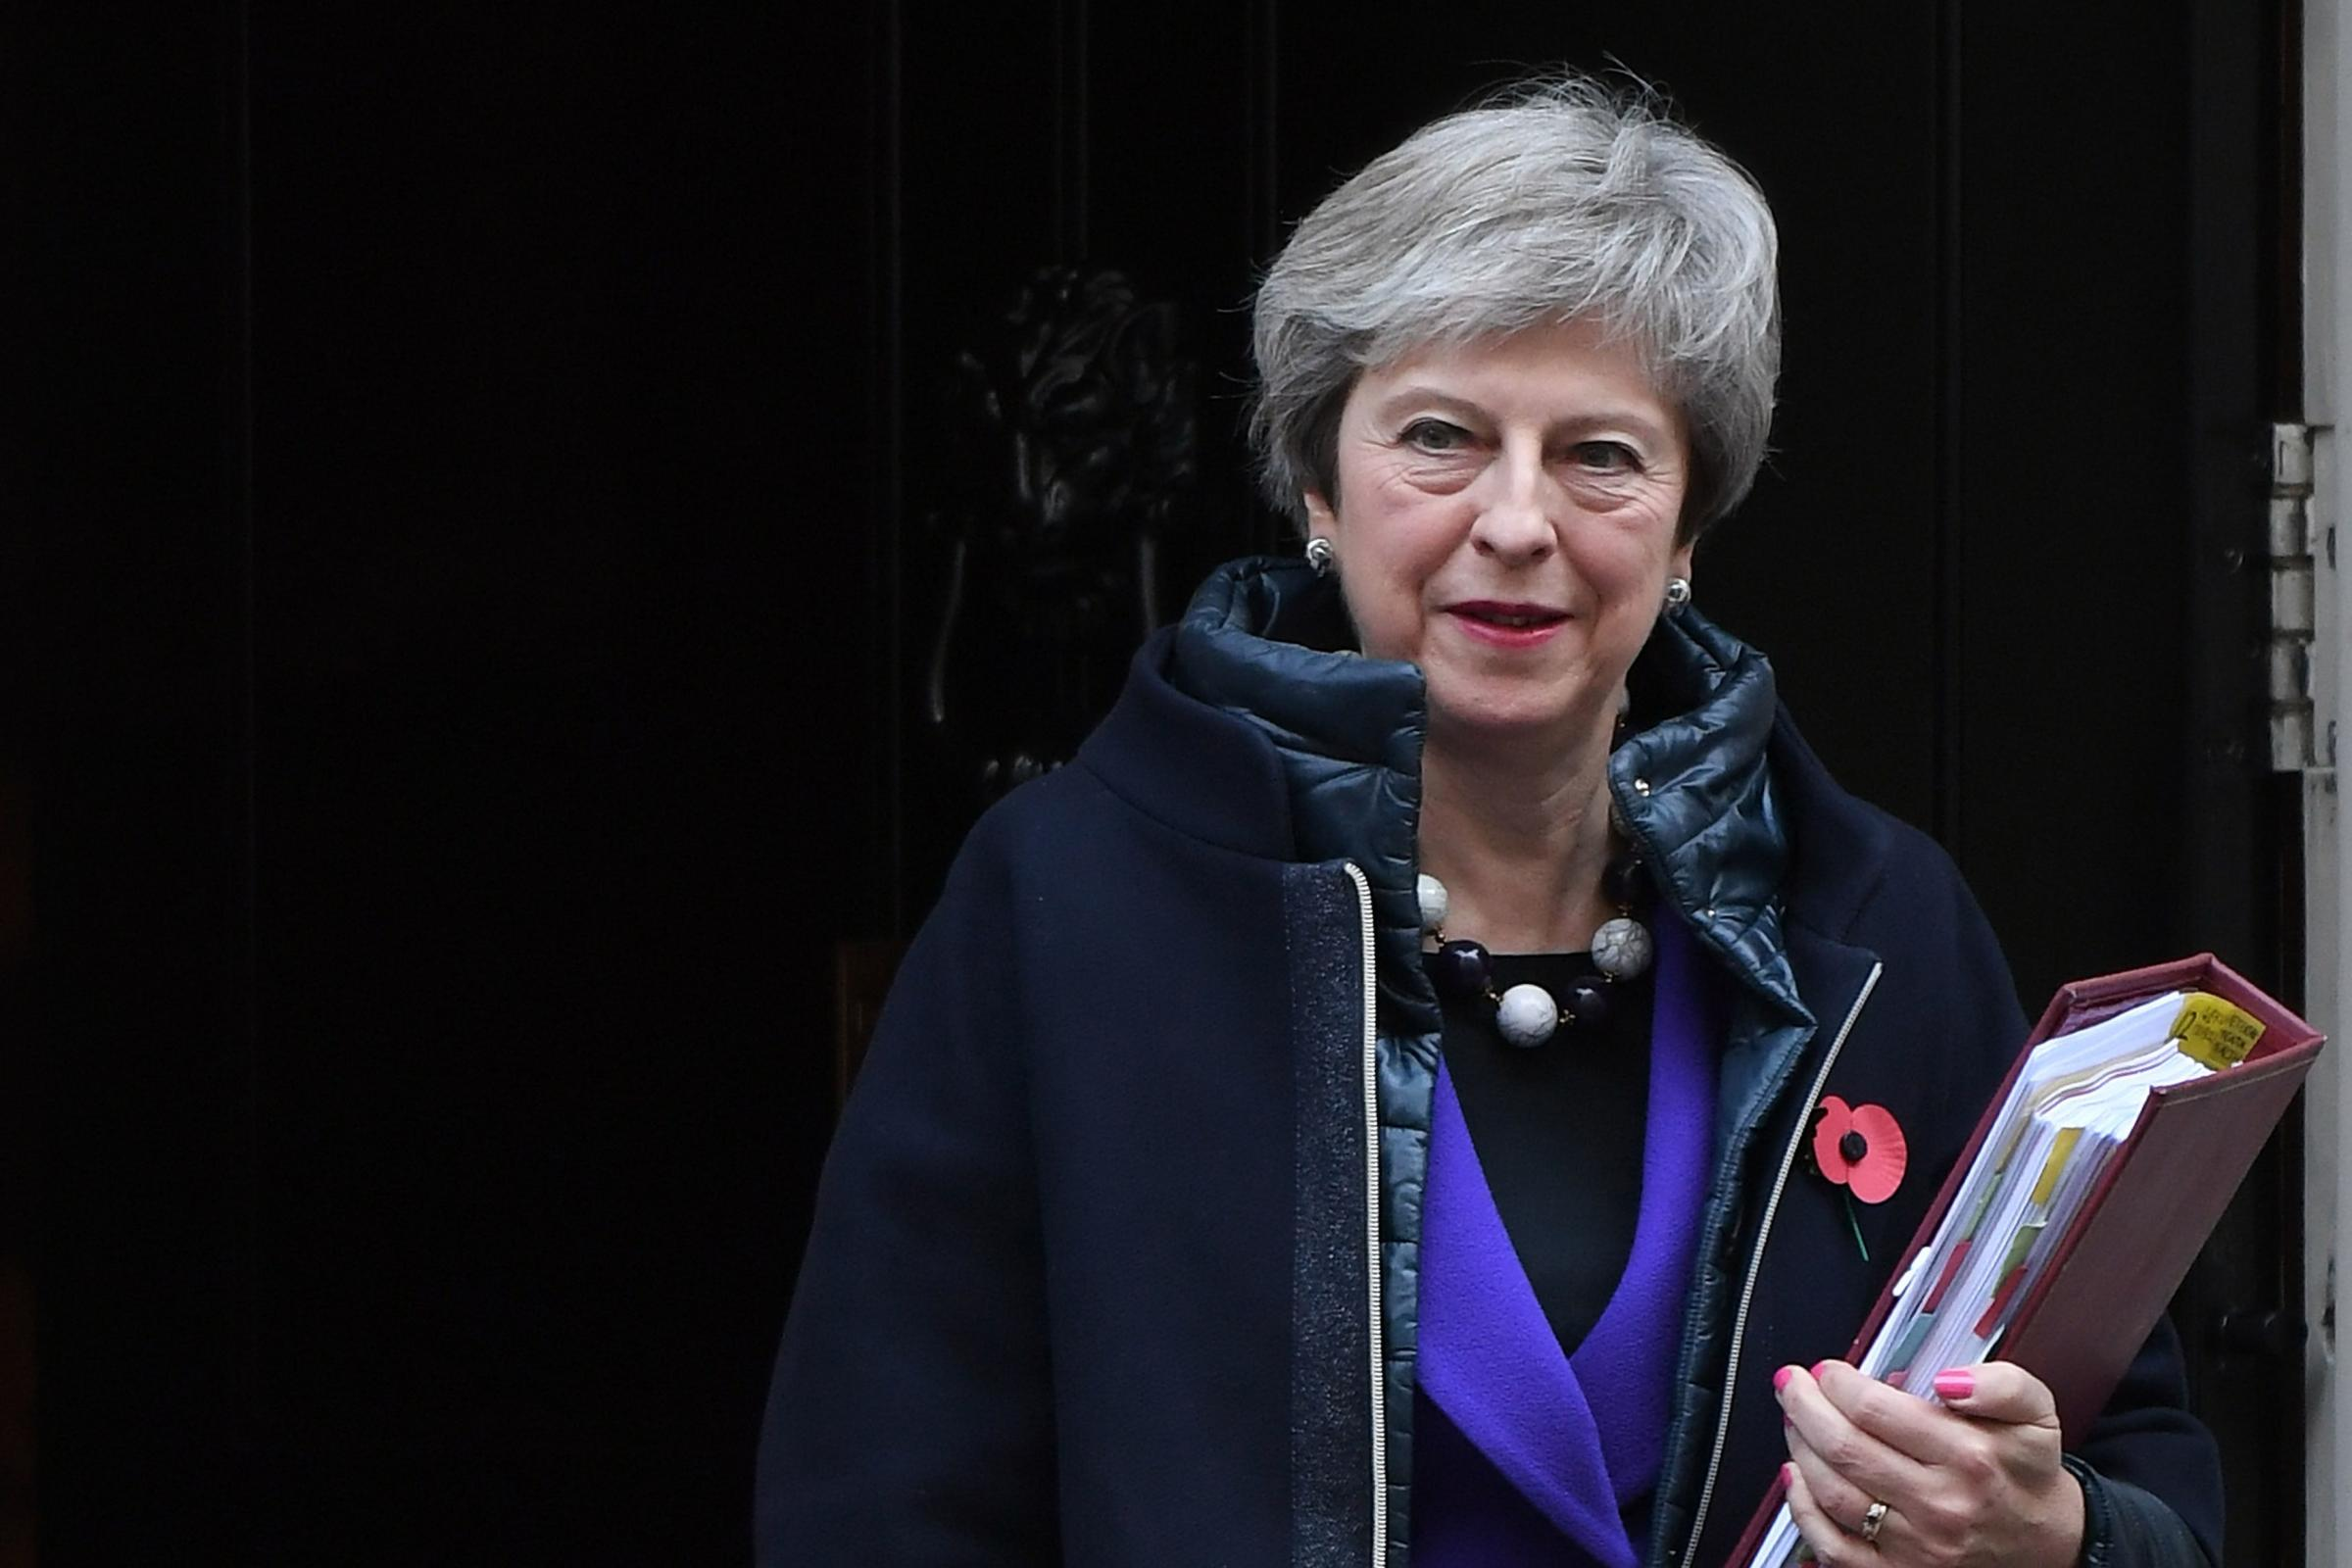 Cabinet to meet on Wednesday to consider draft Brexit deal